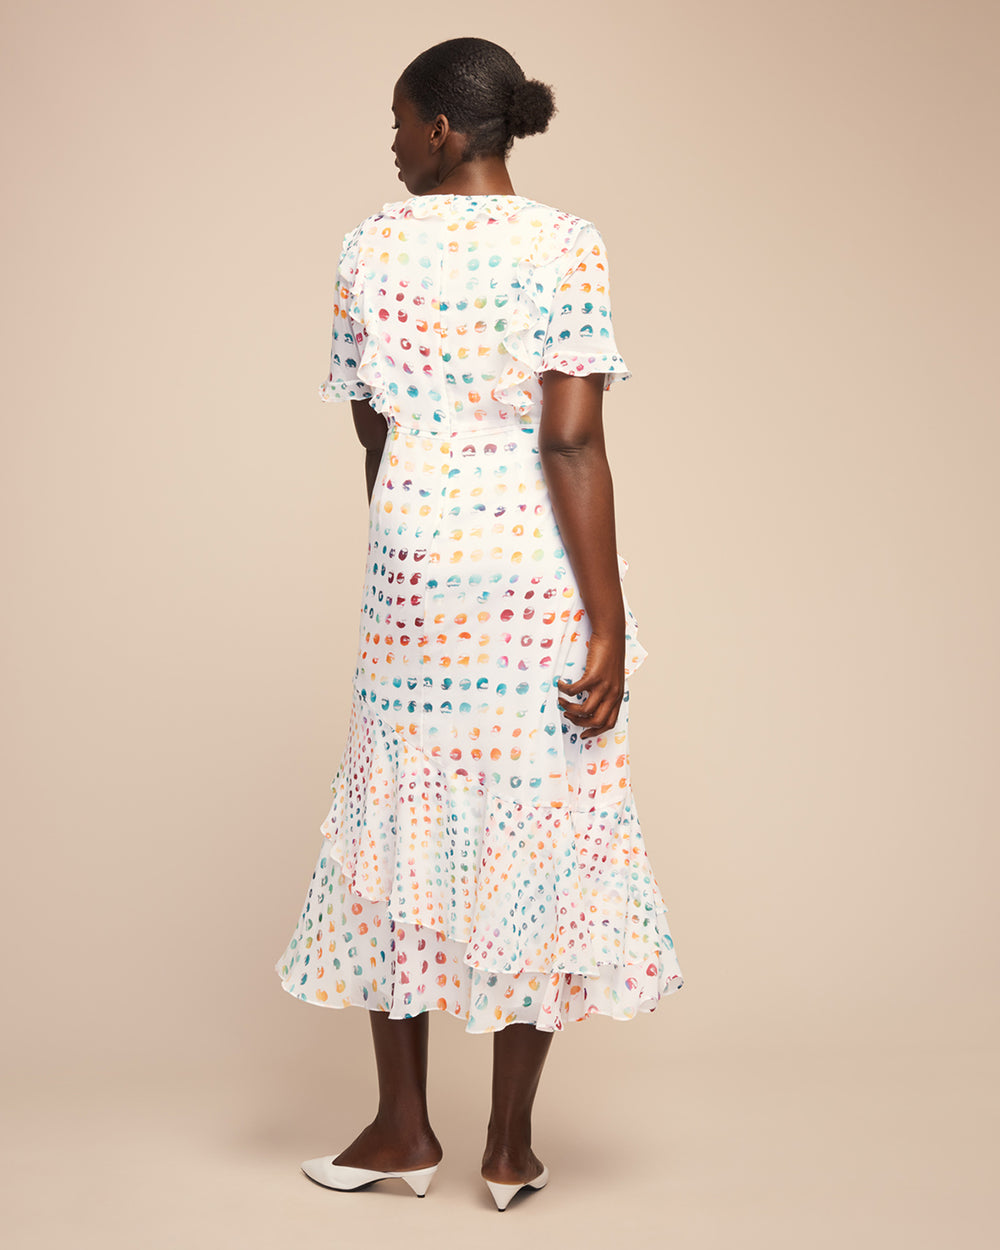 Candy Ruffle Polkadot Dress